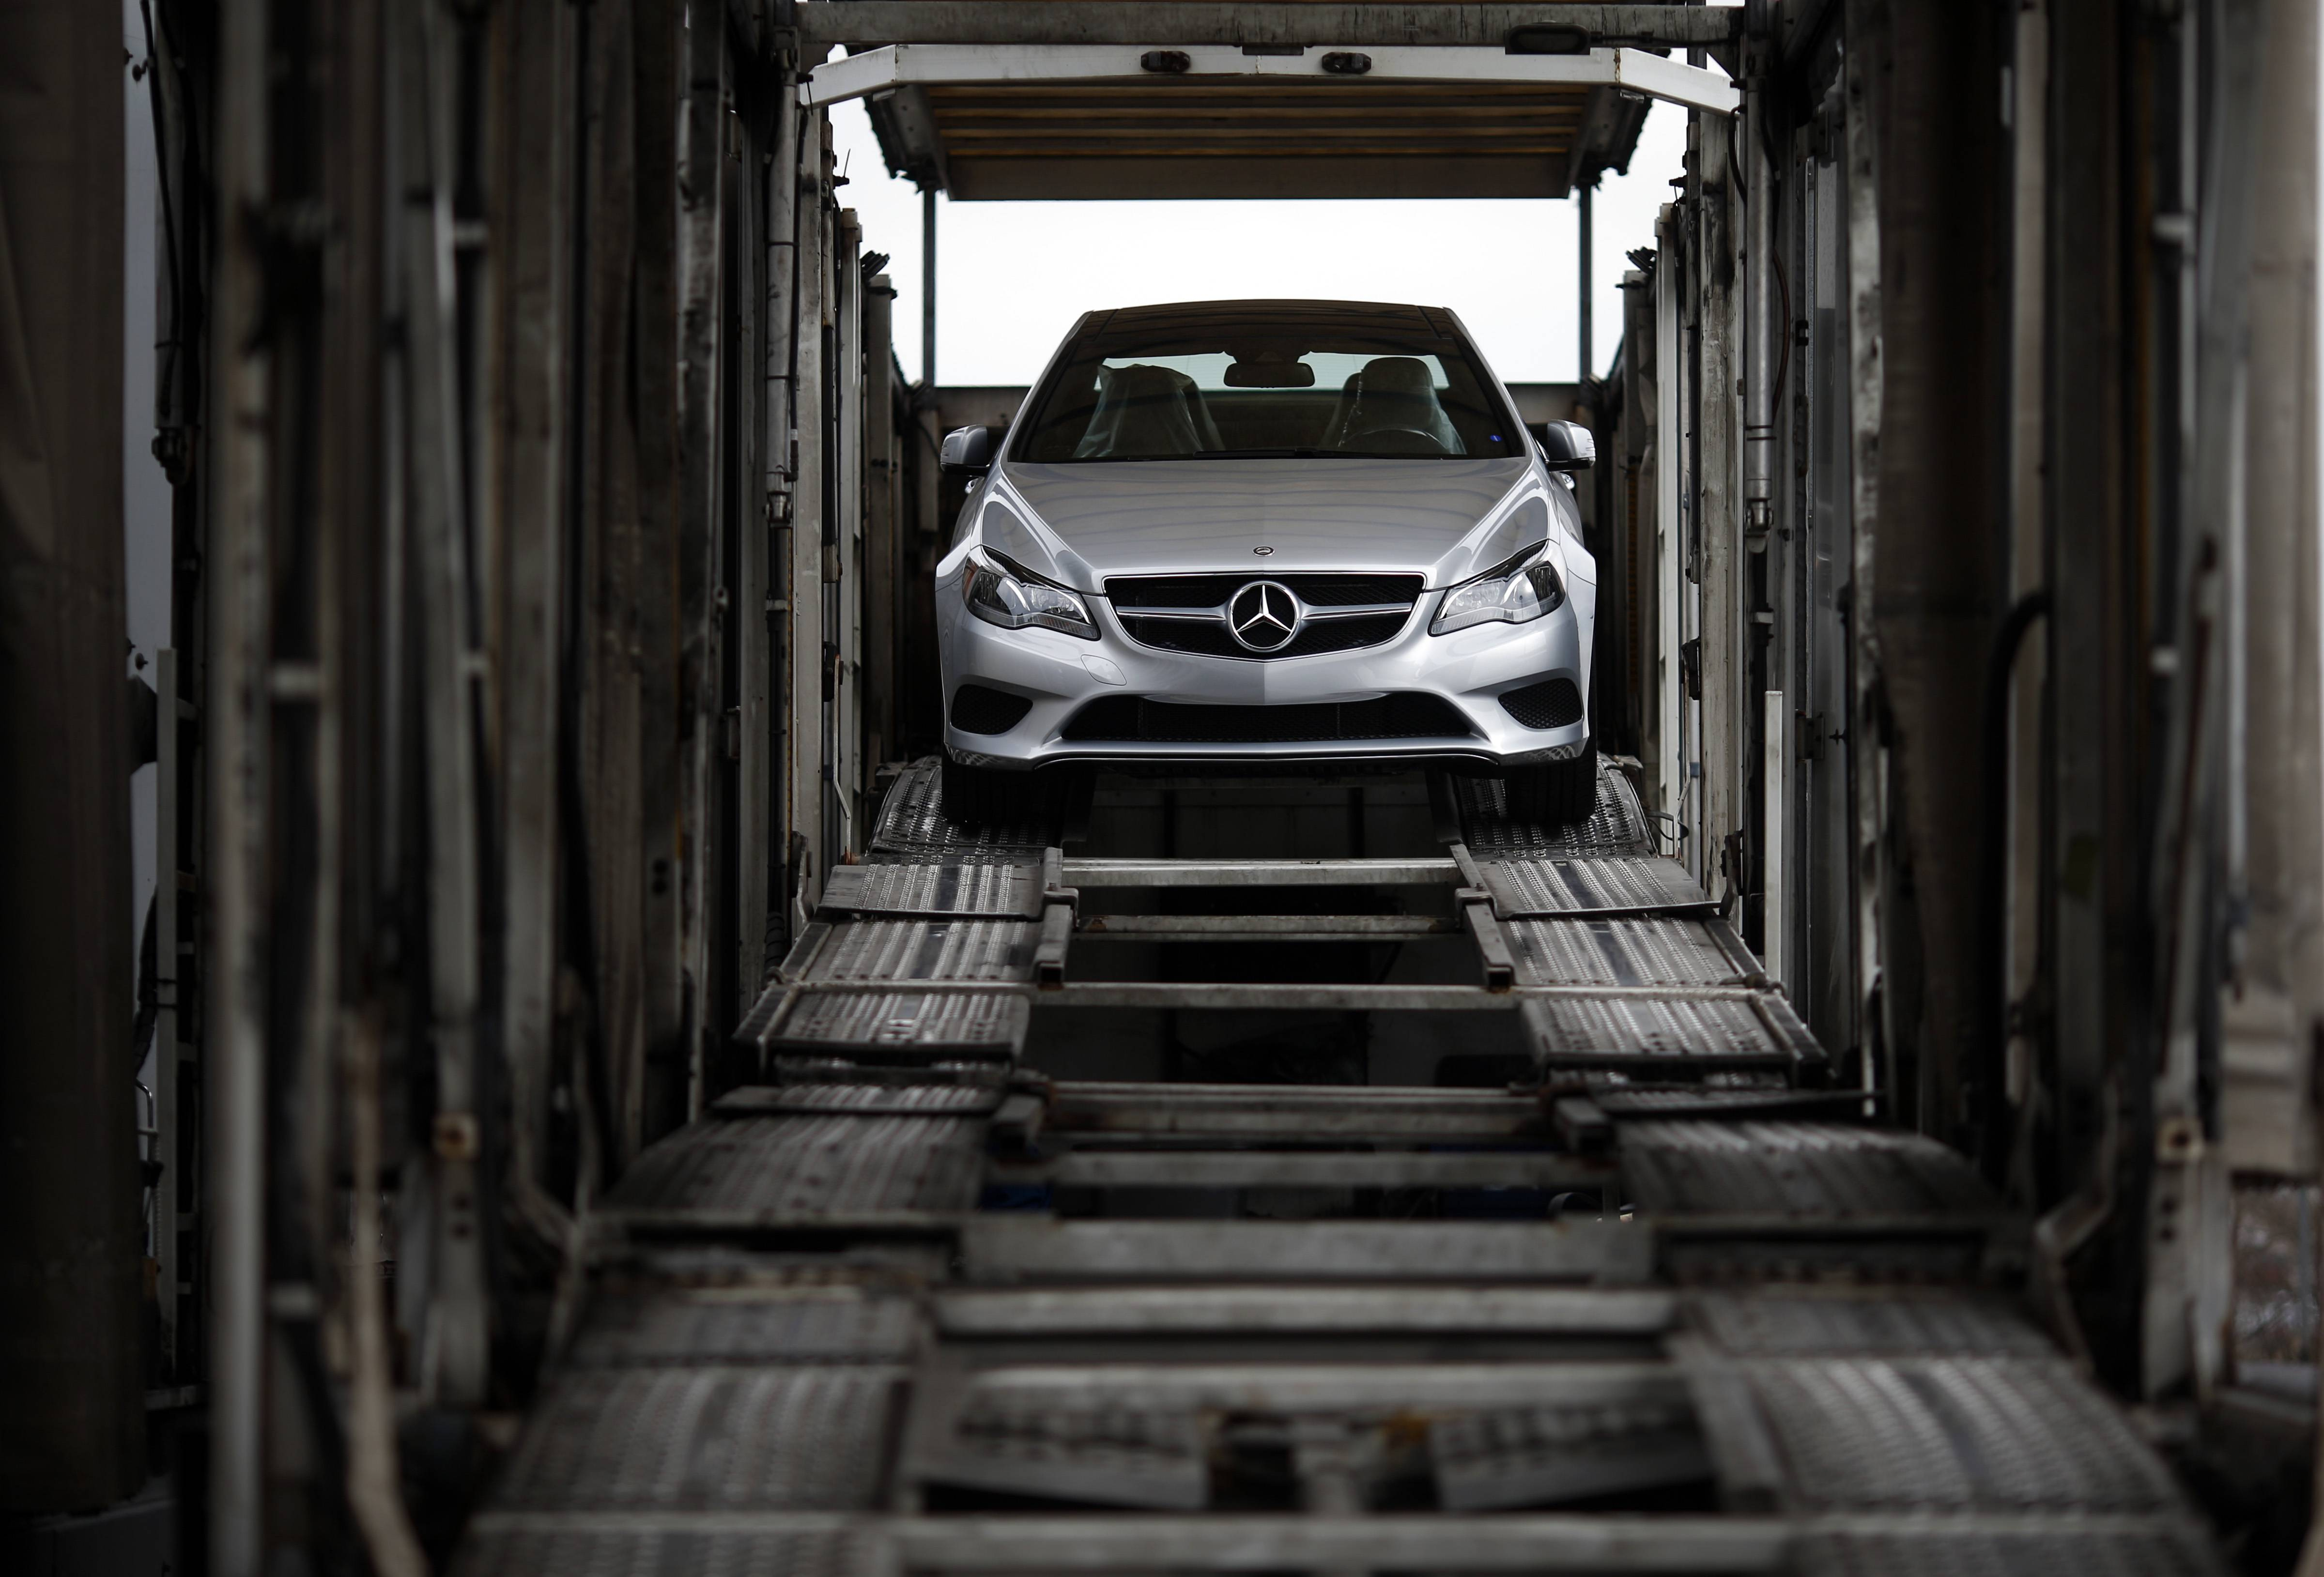 A Mercedes-Benz vehicle sits inside a car-carrier before being hauled away for distribution from the company's Vehicle Processing Center in Baltimore. After sales slumped in January and February because of the brutal weather, automakers hope a rebound in March will get them back on track to sell more than 16 million cars in the U.S. this year.